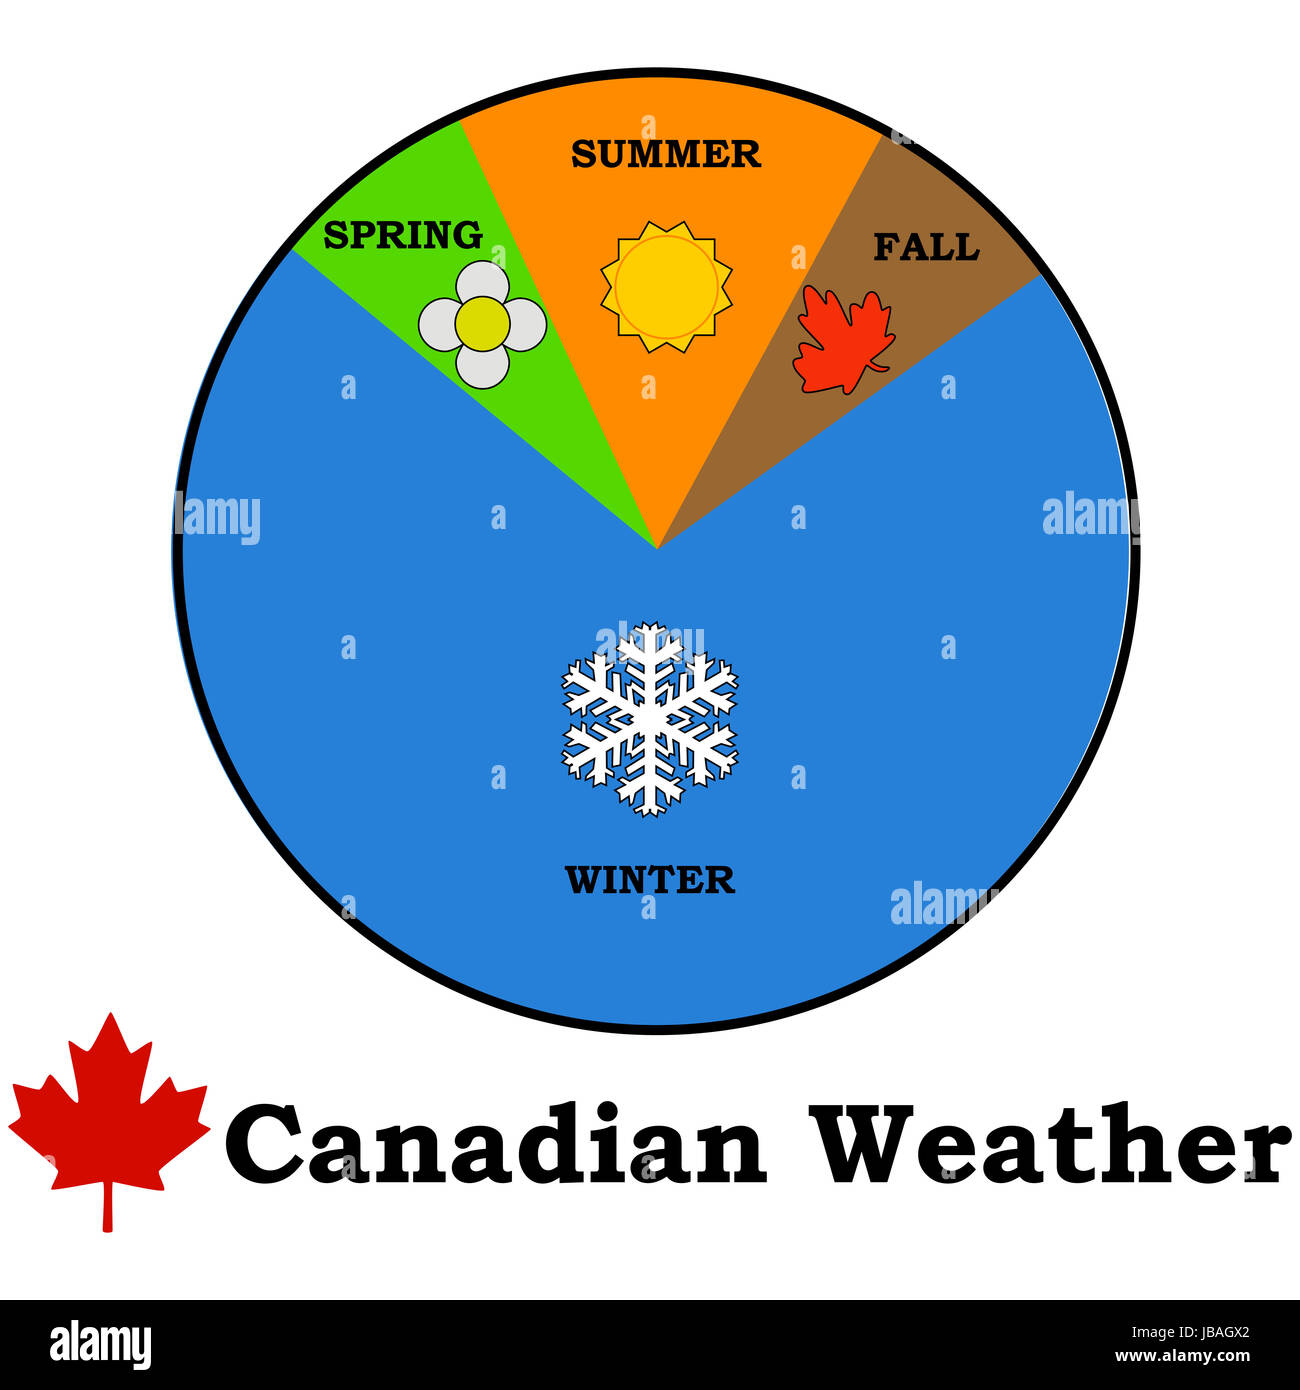 Concept illustration showing a vision of Canadian seasons, with a very long winter compared to relatively smaller - Stock Image